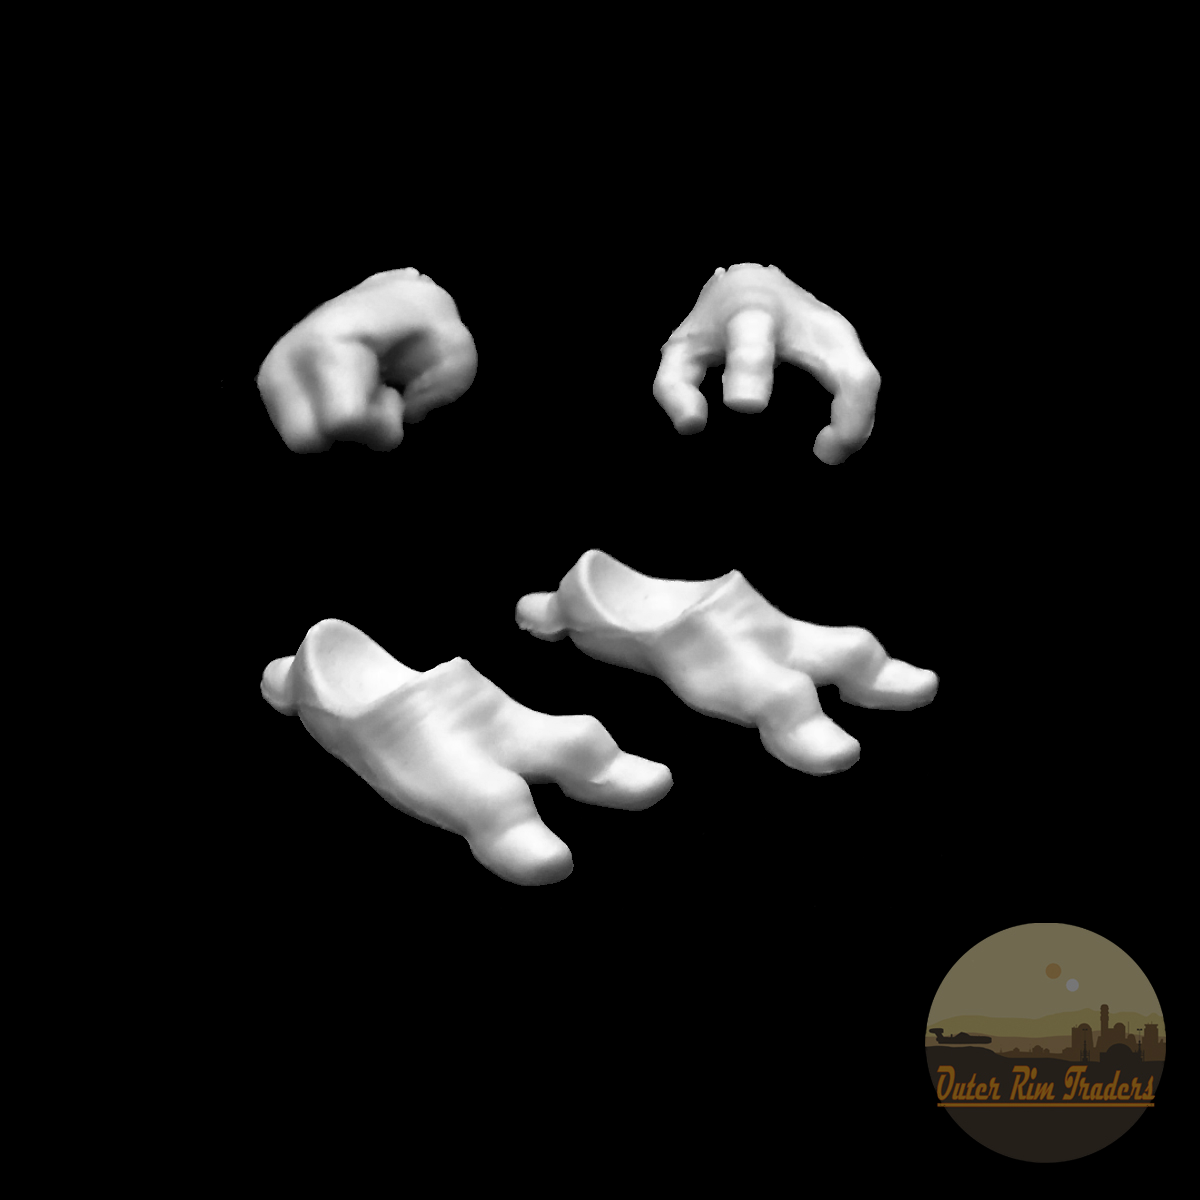 Image of Alien hands and feet